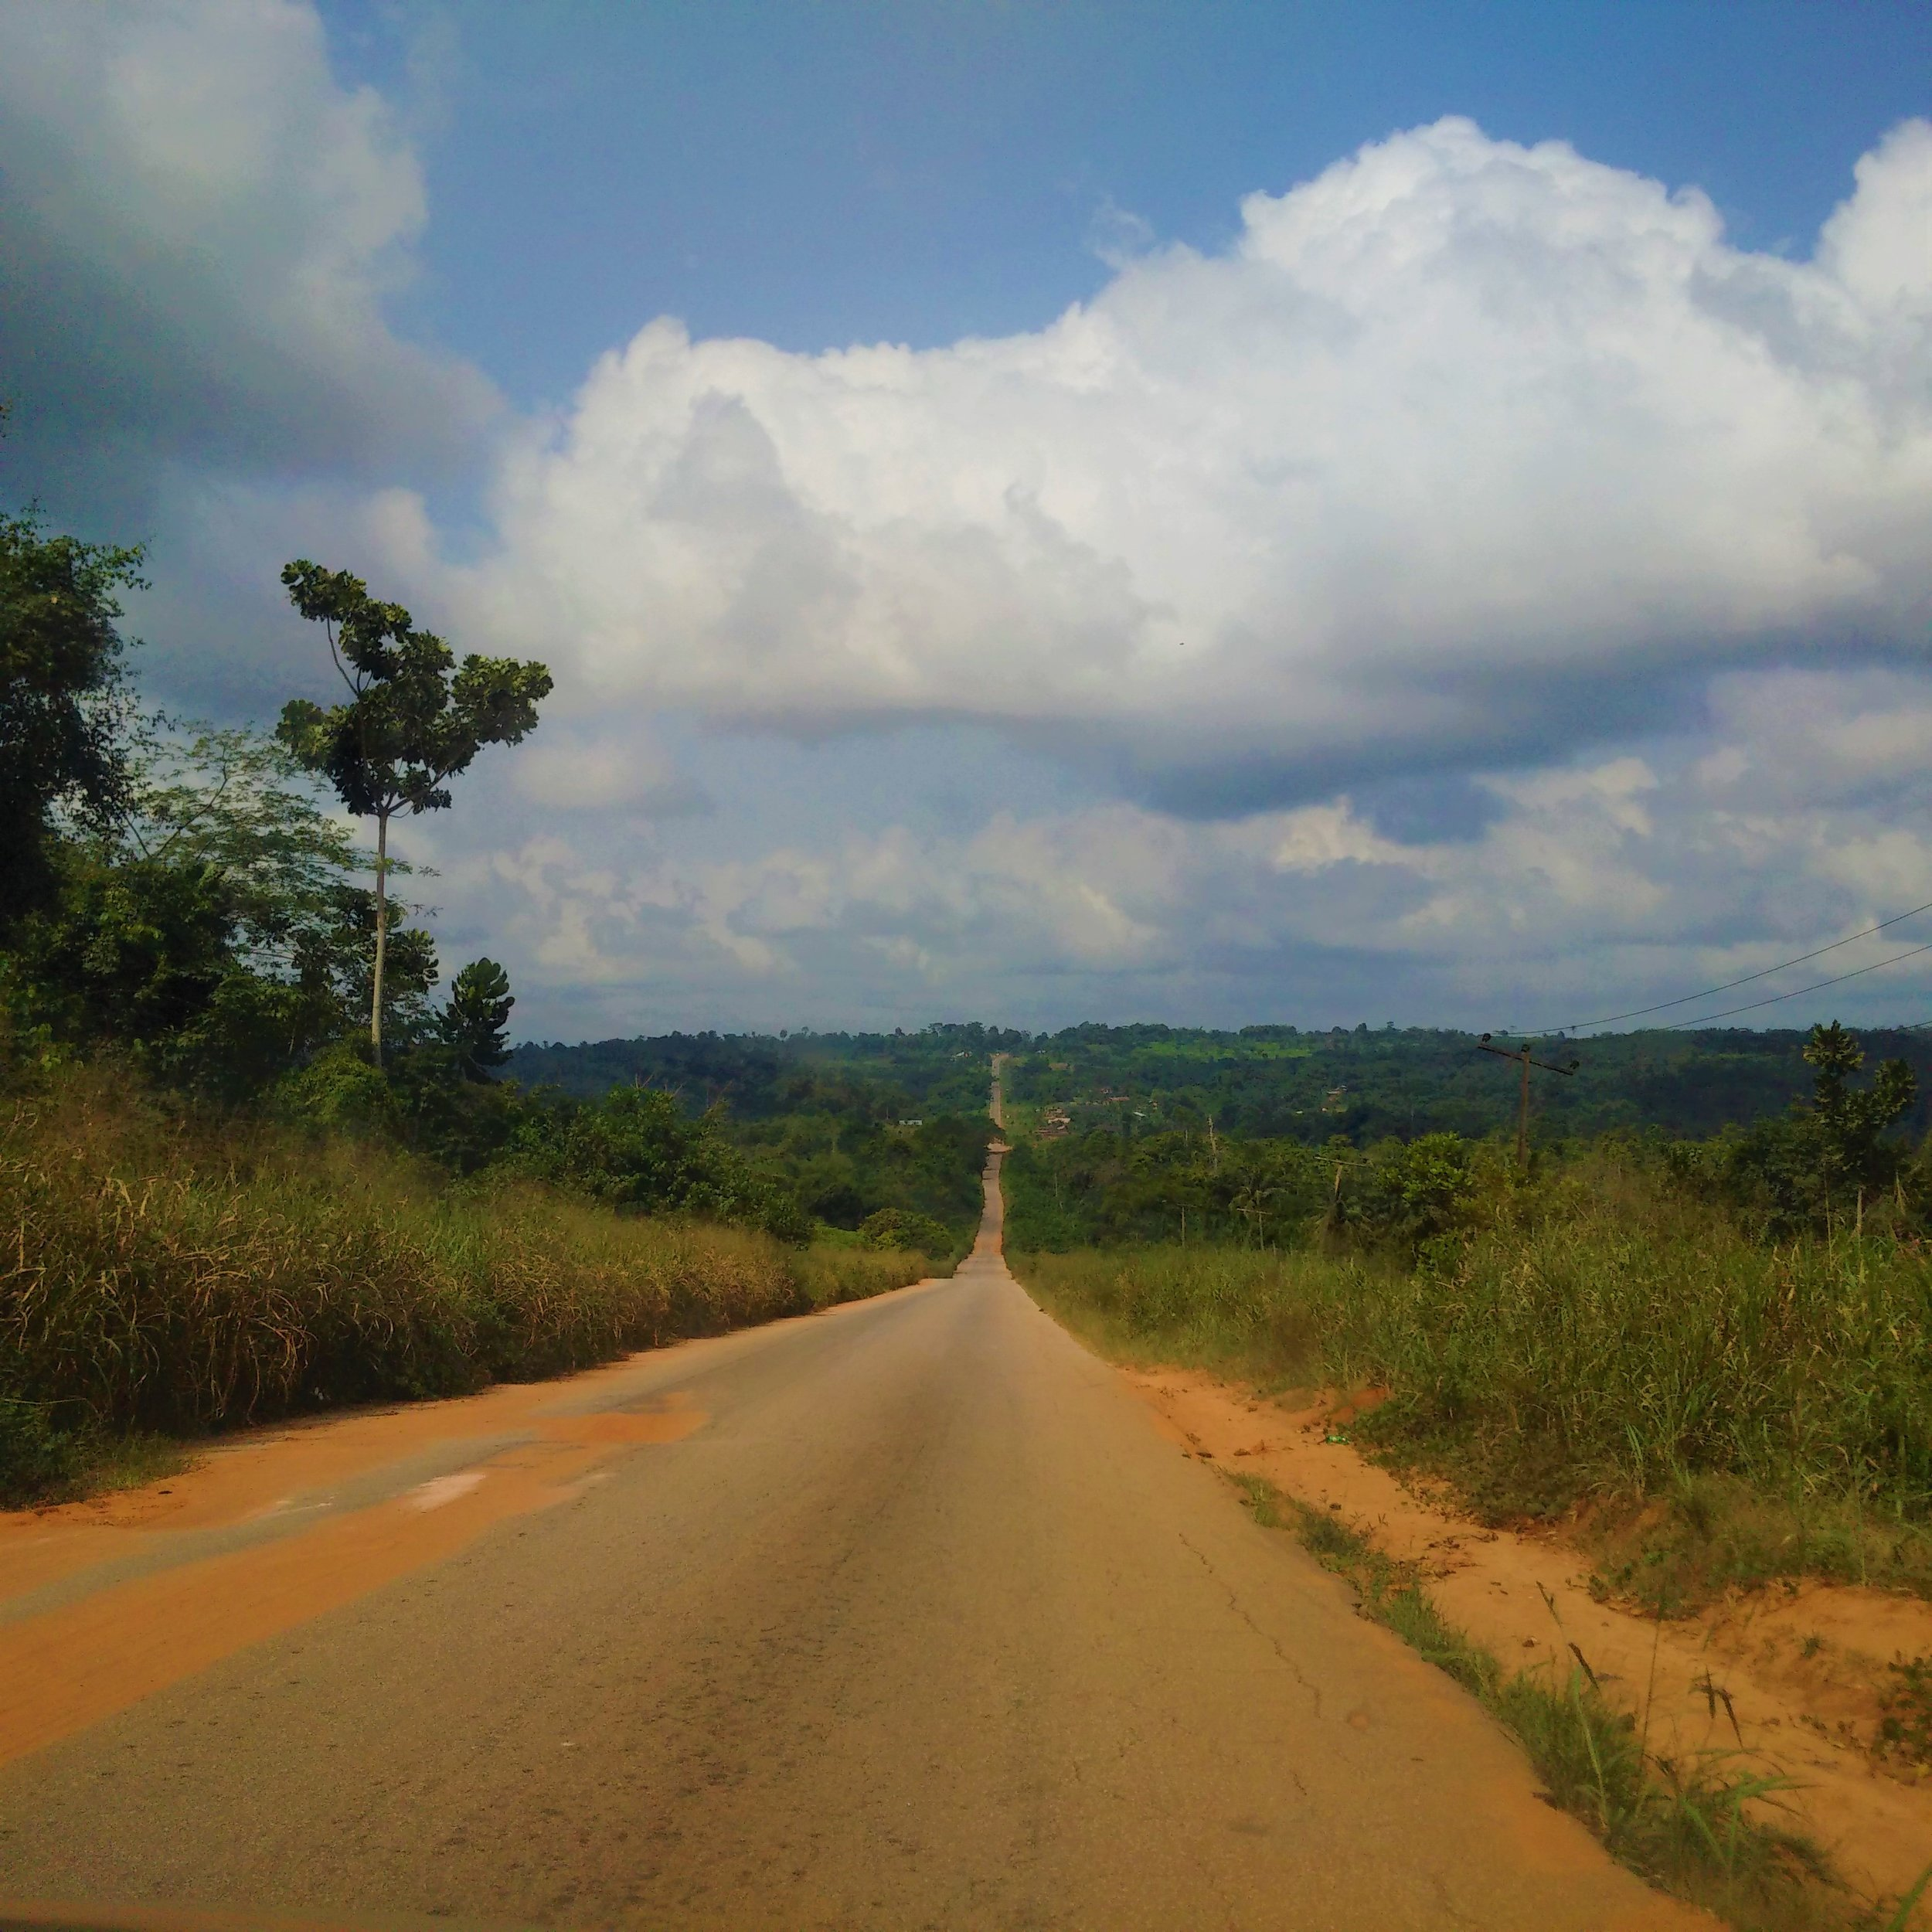 Road to Okomu National Park